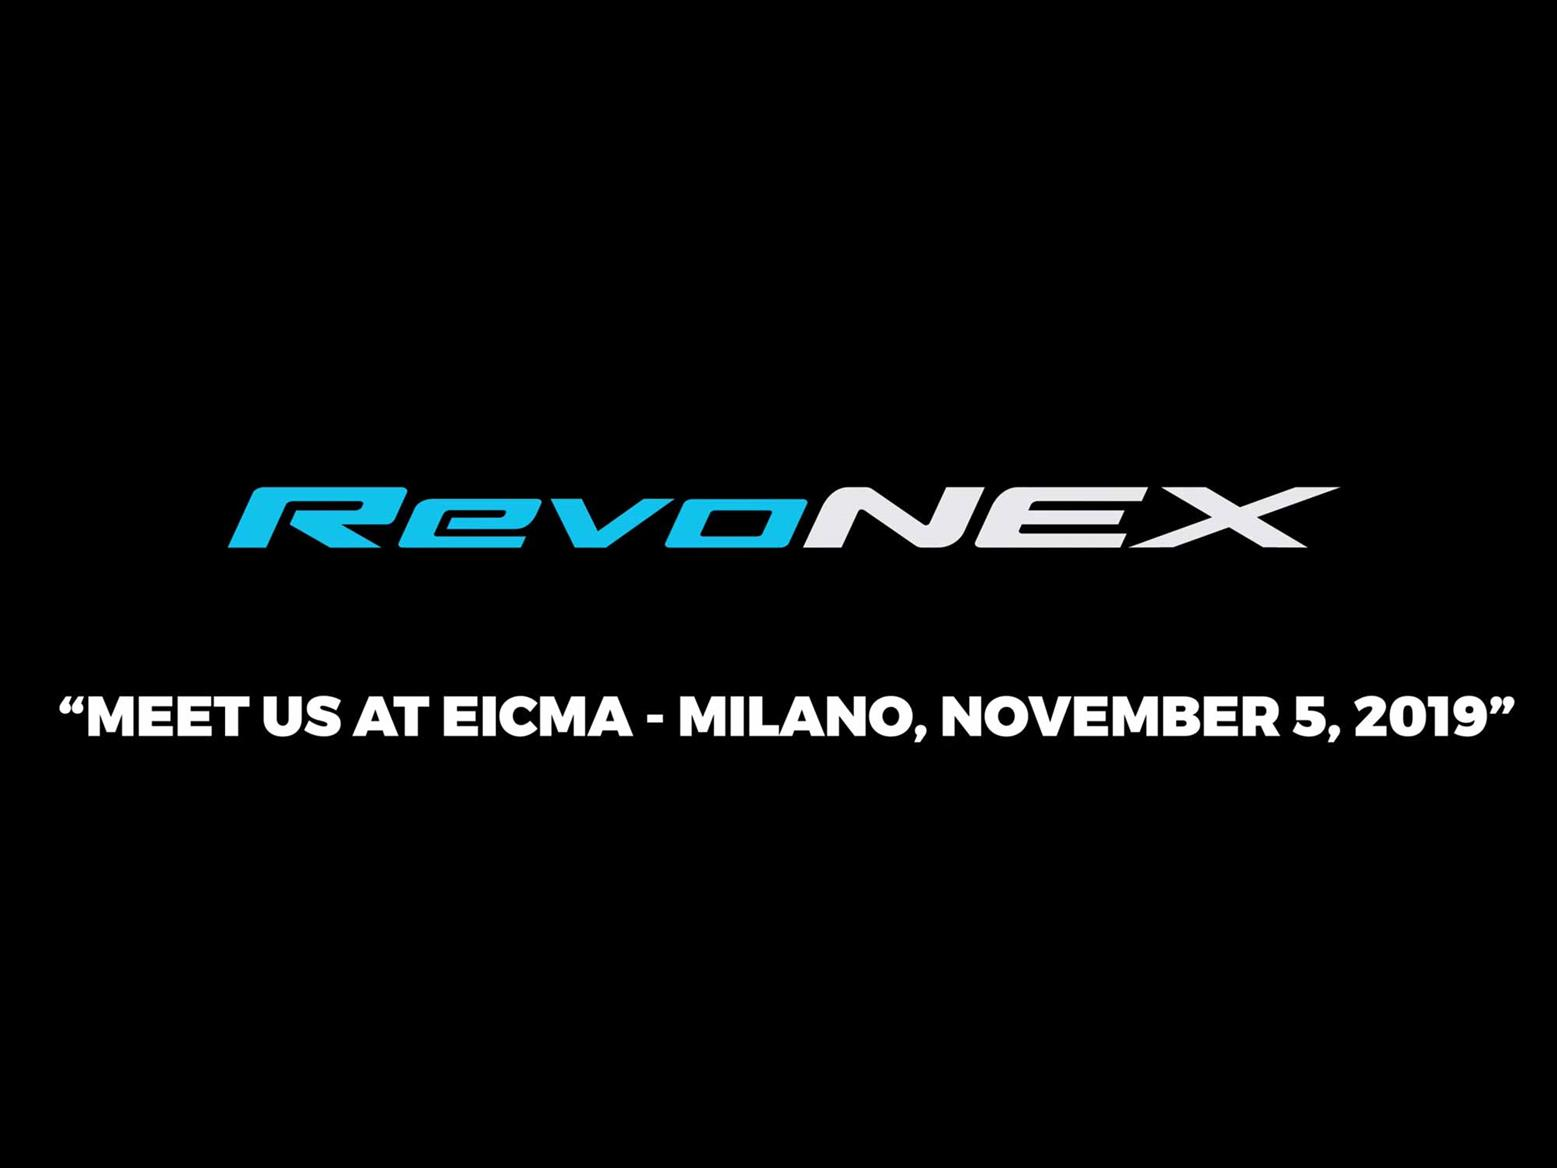 Kymco teased the RevoNEX ahead of Eicma 2019